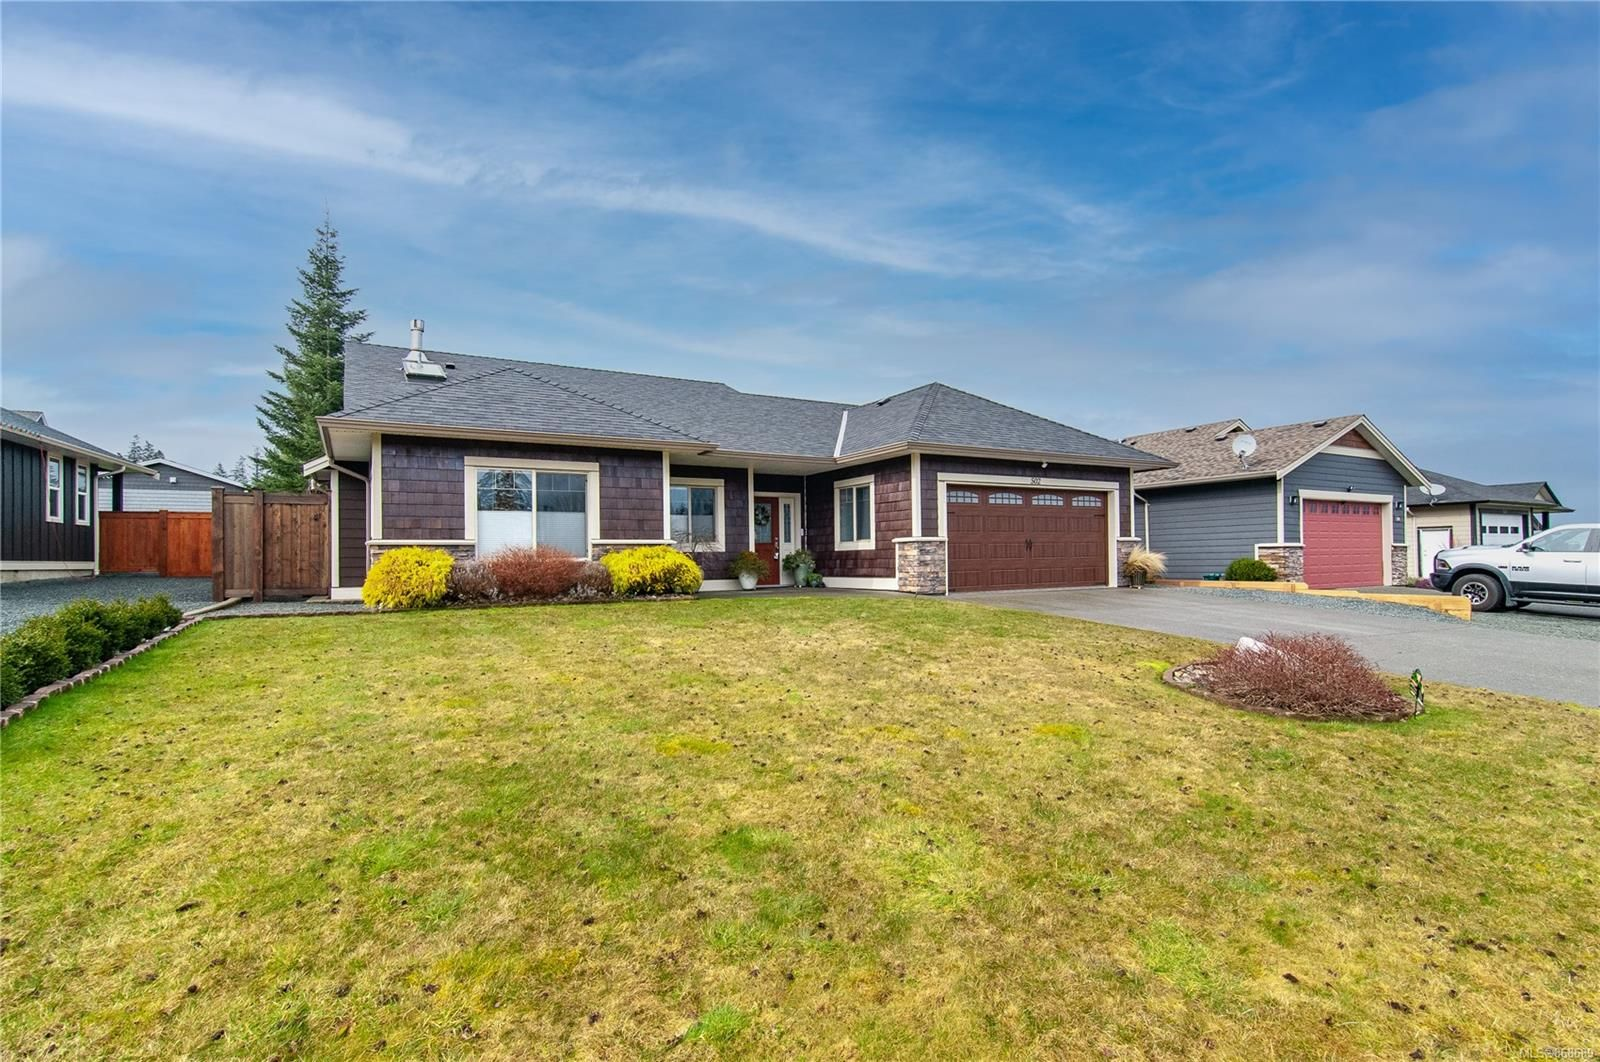 Main Photo: 502 Park Forest Dr in : CR Campbell River West House for sale (Campbell River)  : MLS®# 868689